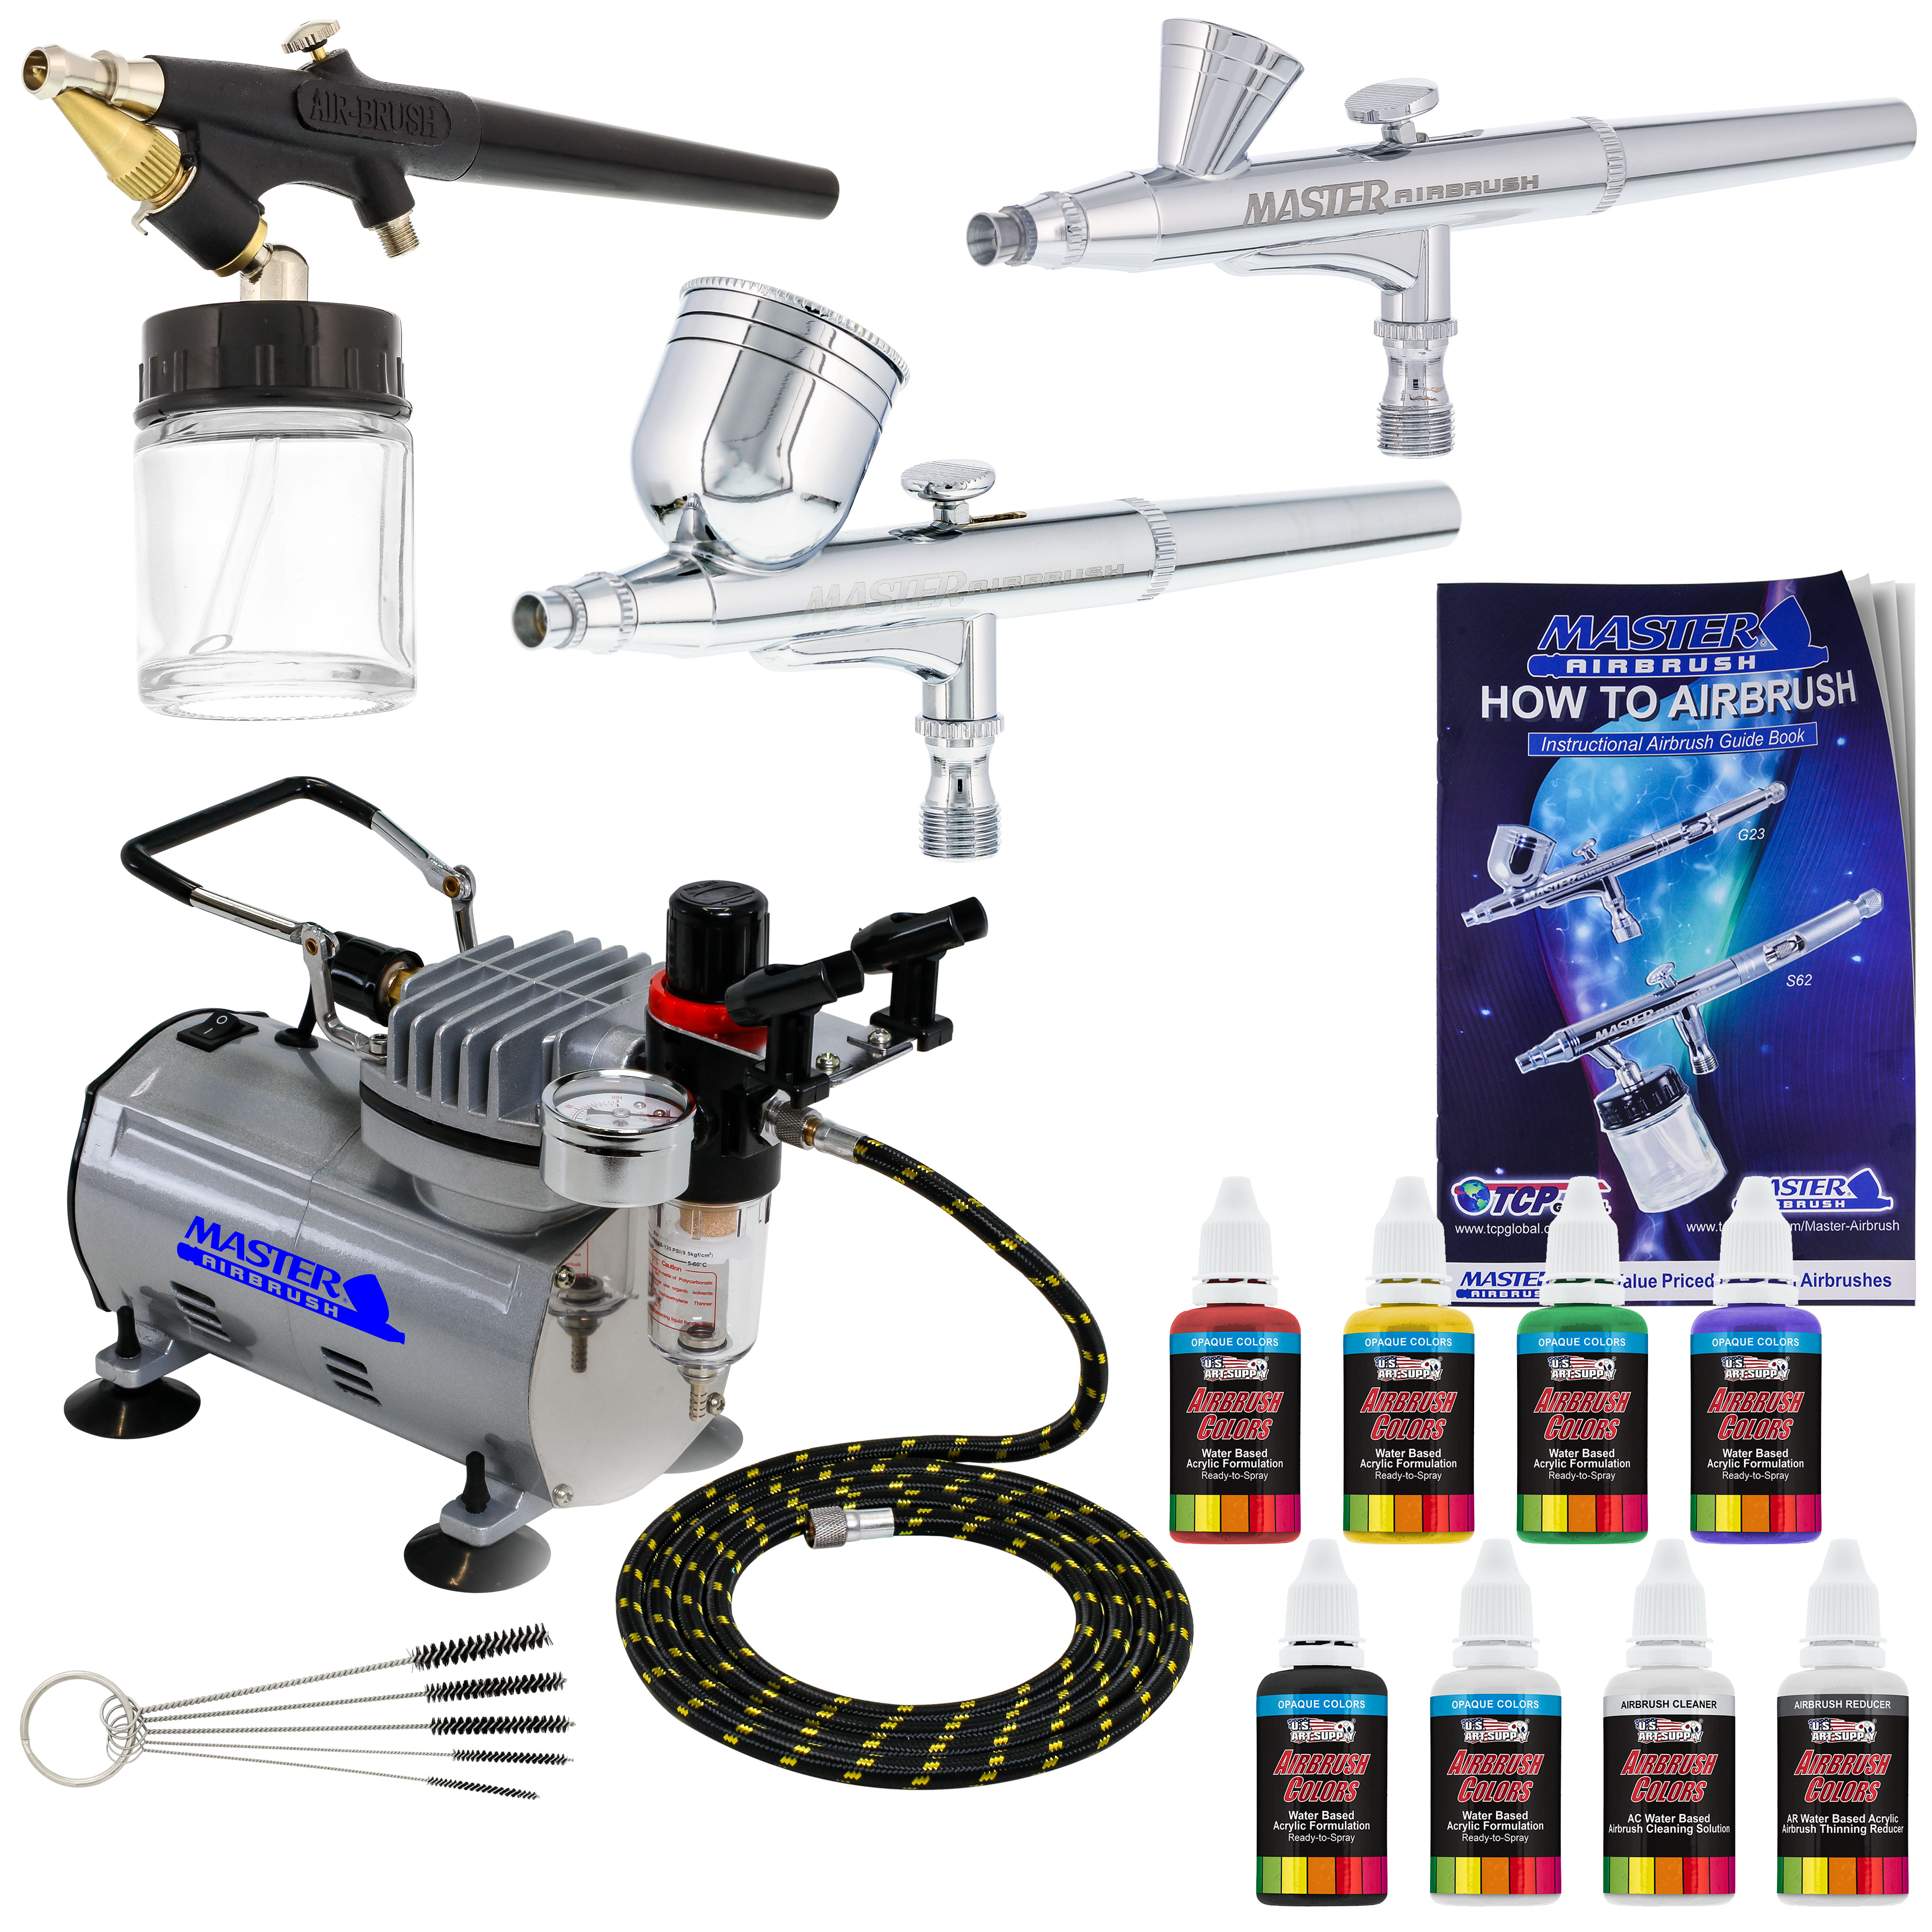 Details about Master 3 Airbrush, Air Compressor Kit, Holder 6 Primary  Colors Acrylic Paint Set